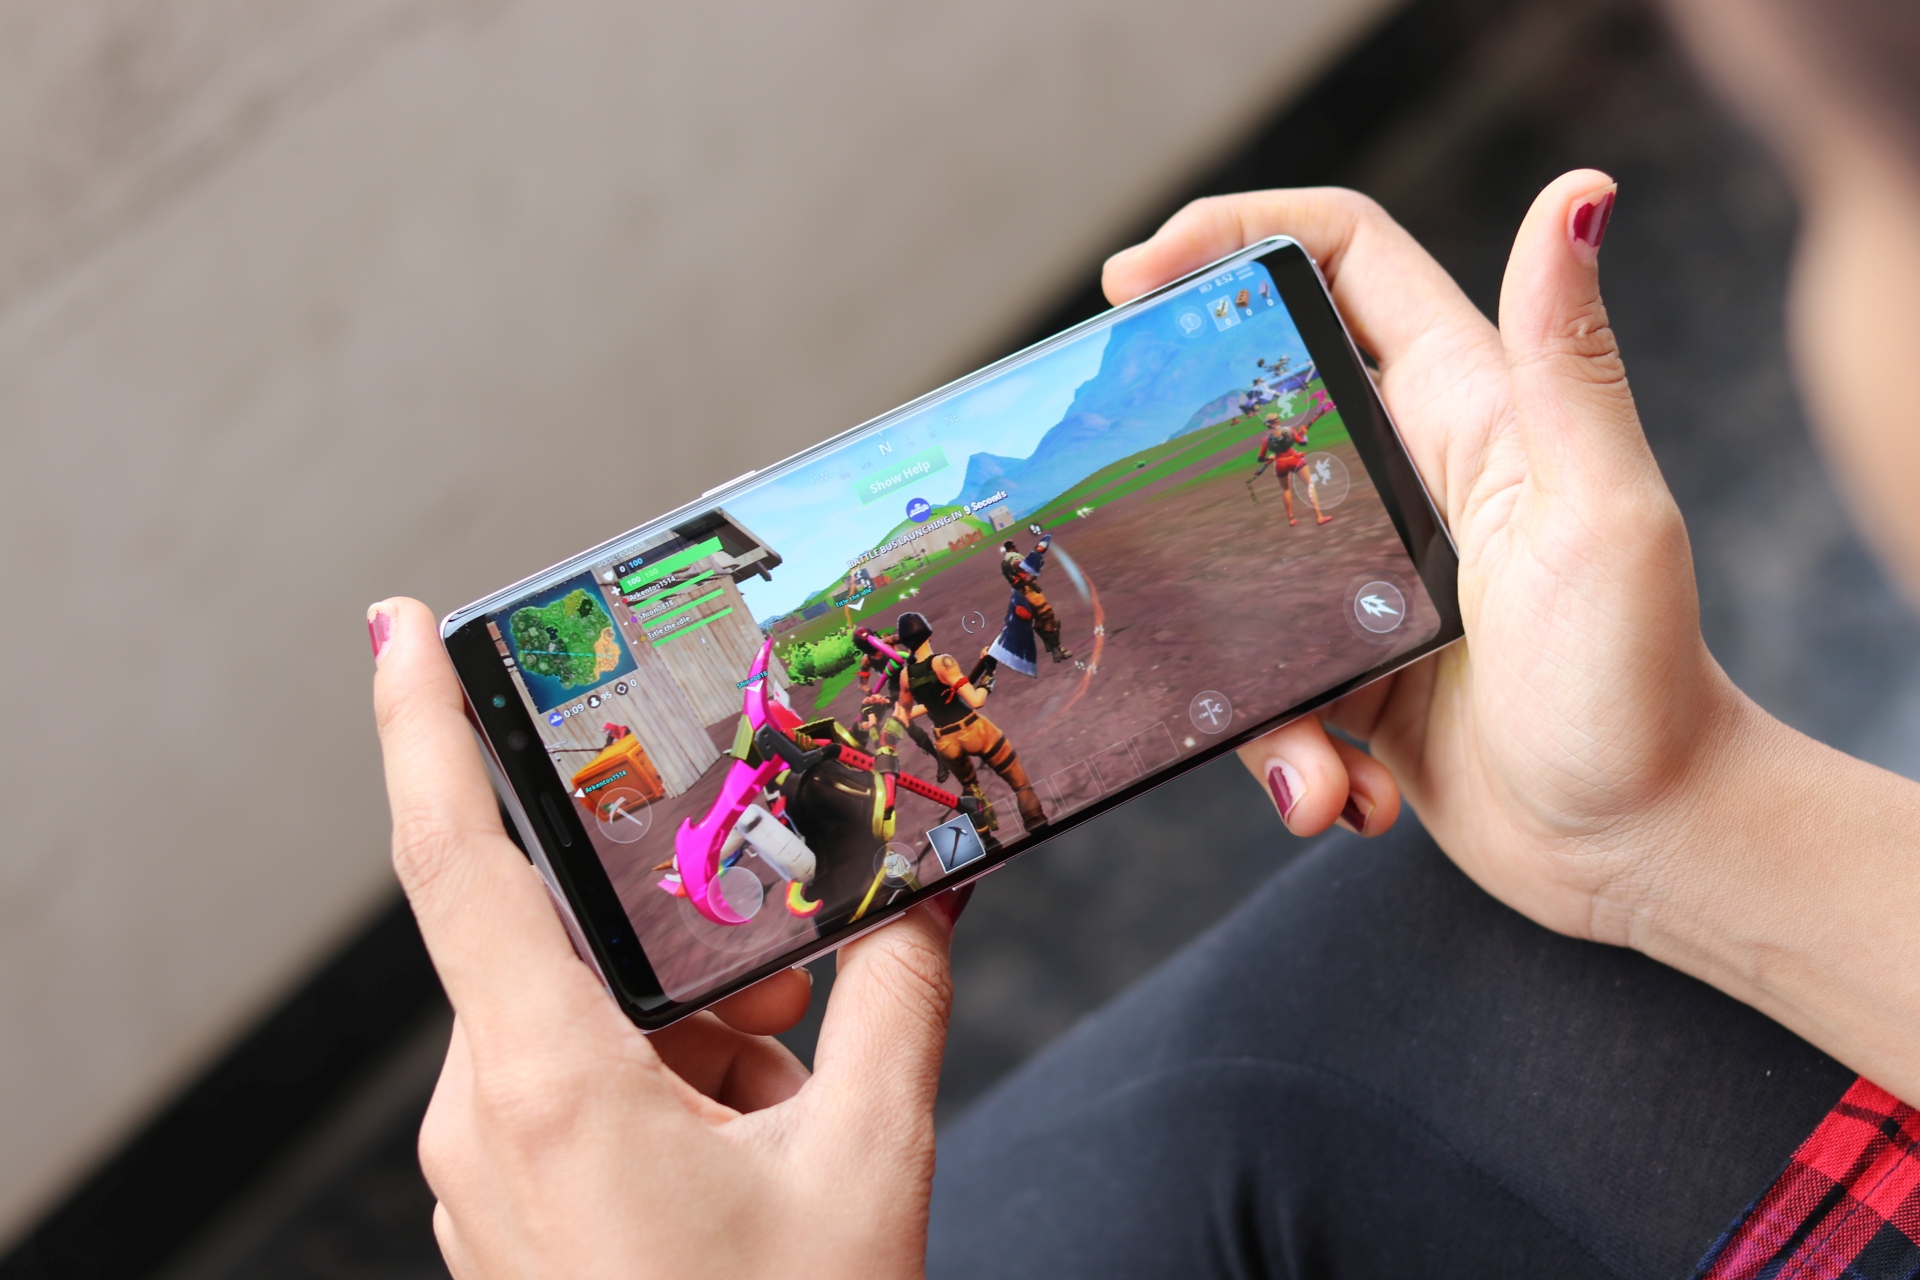 How to download Fortnite for Android on your Samsung Galaxy